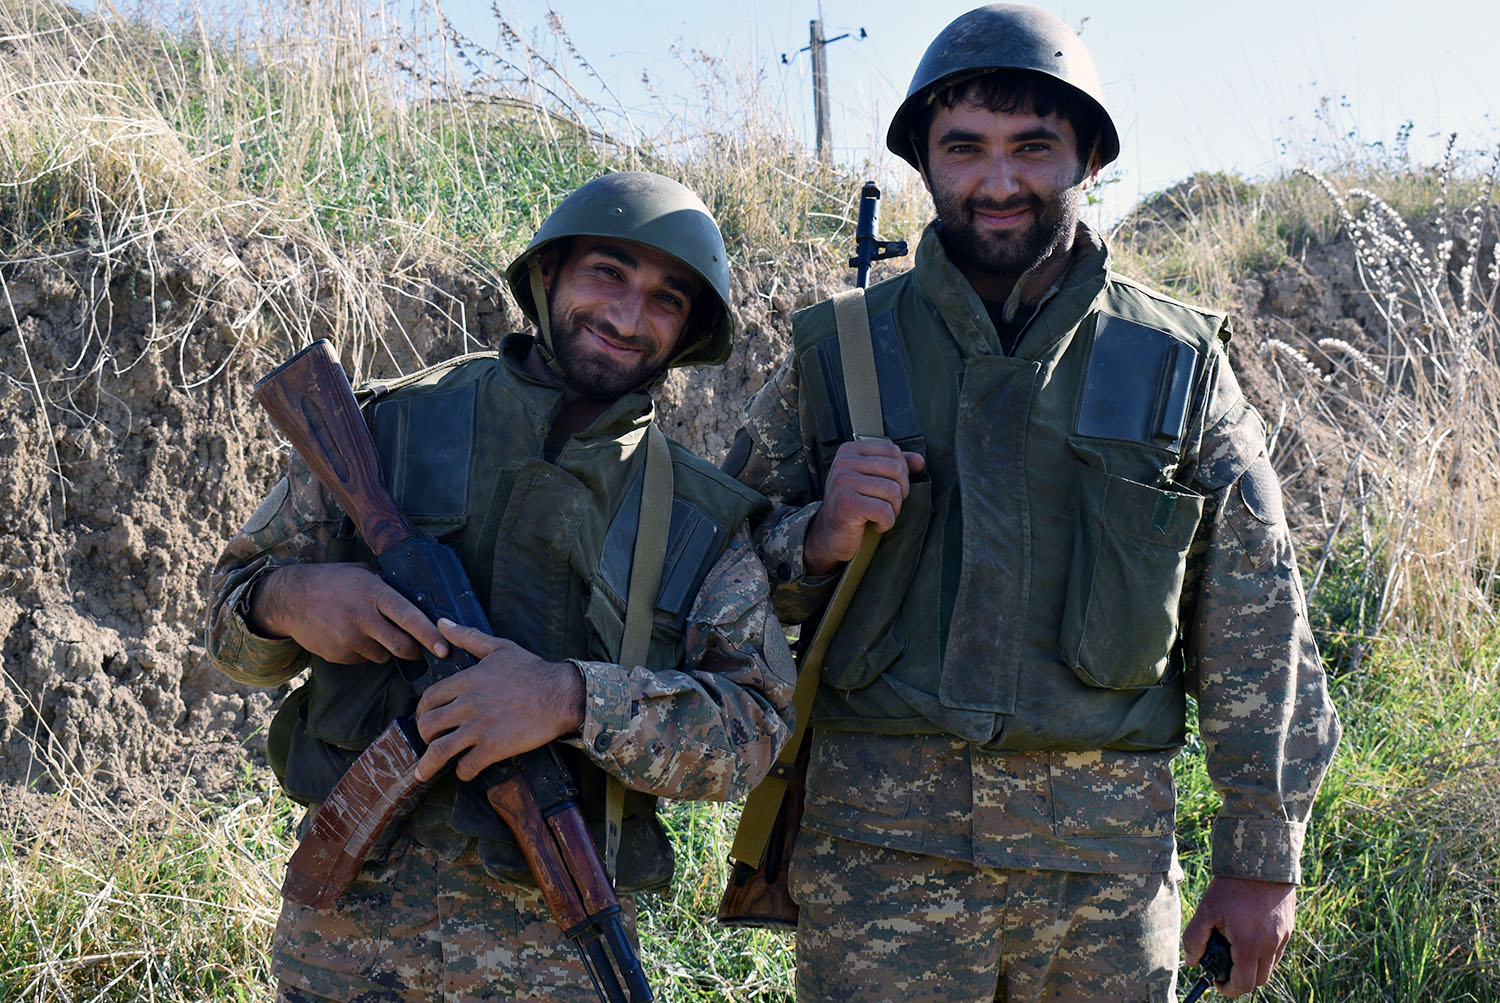 Laert, 27, a construction worker, and Artak, 26, who works in agriculture, both from Martuni near Nagorno-Karabakh's front line, volunteer for the army on Oct. 25. Both withheld their last names out of concern for their safety.